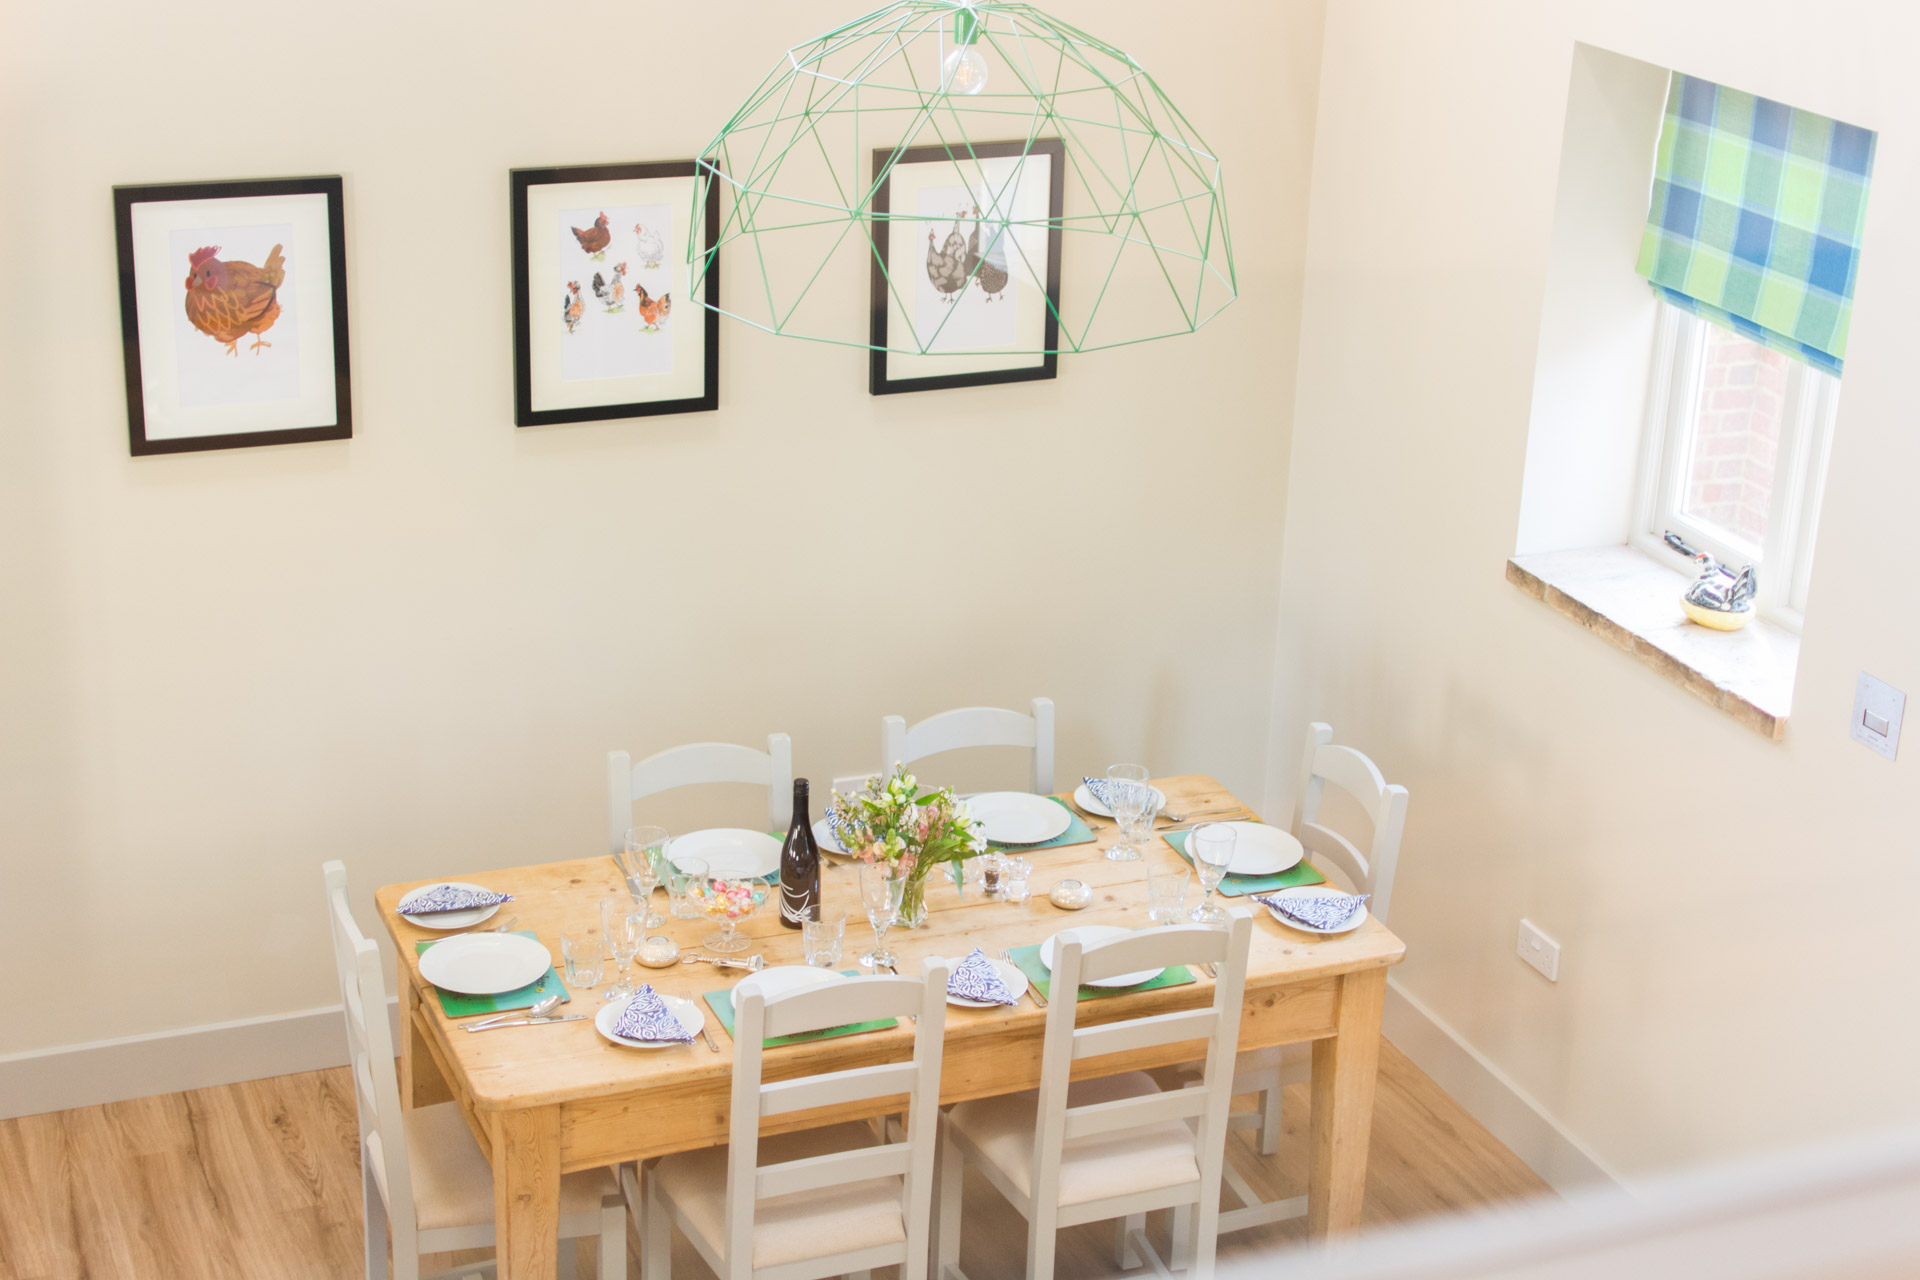 Dining area showing a laid table. Taken from the twin room upstairs bedroom.